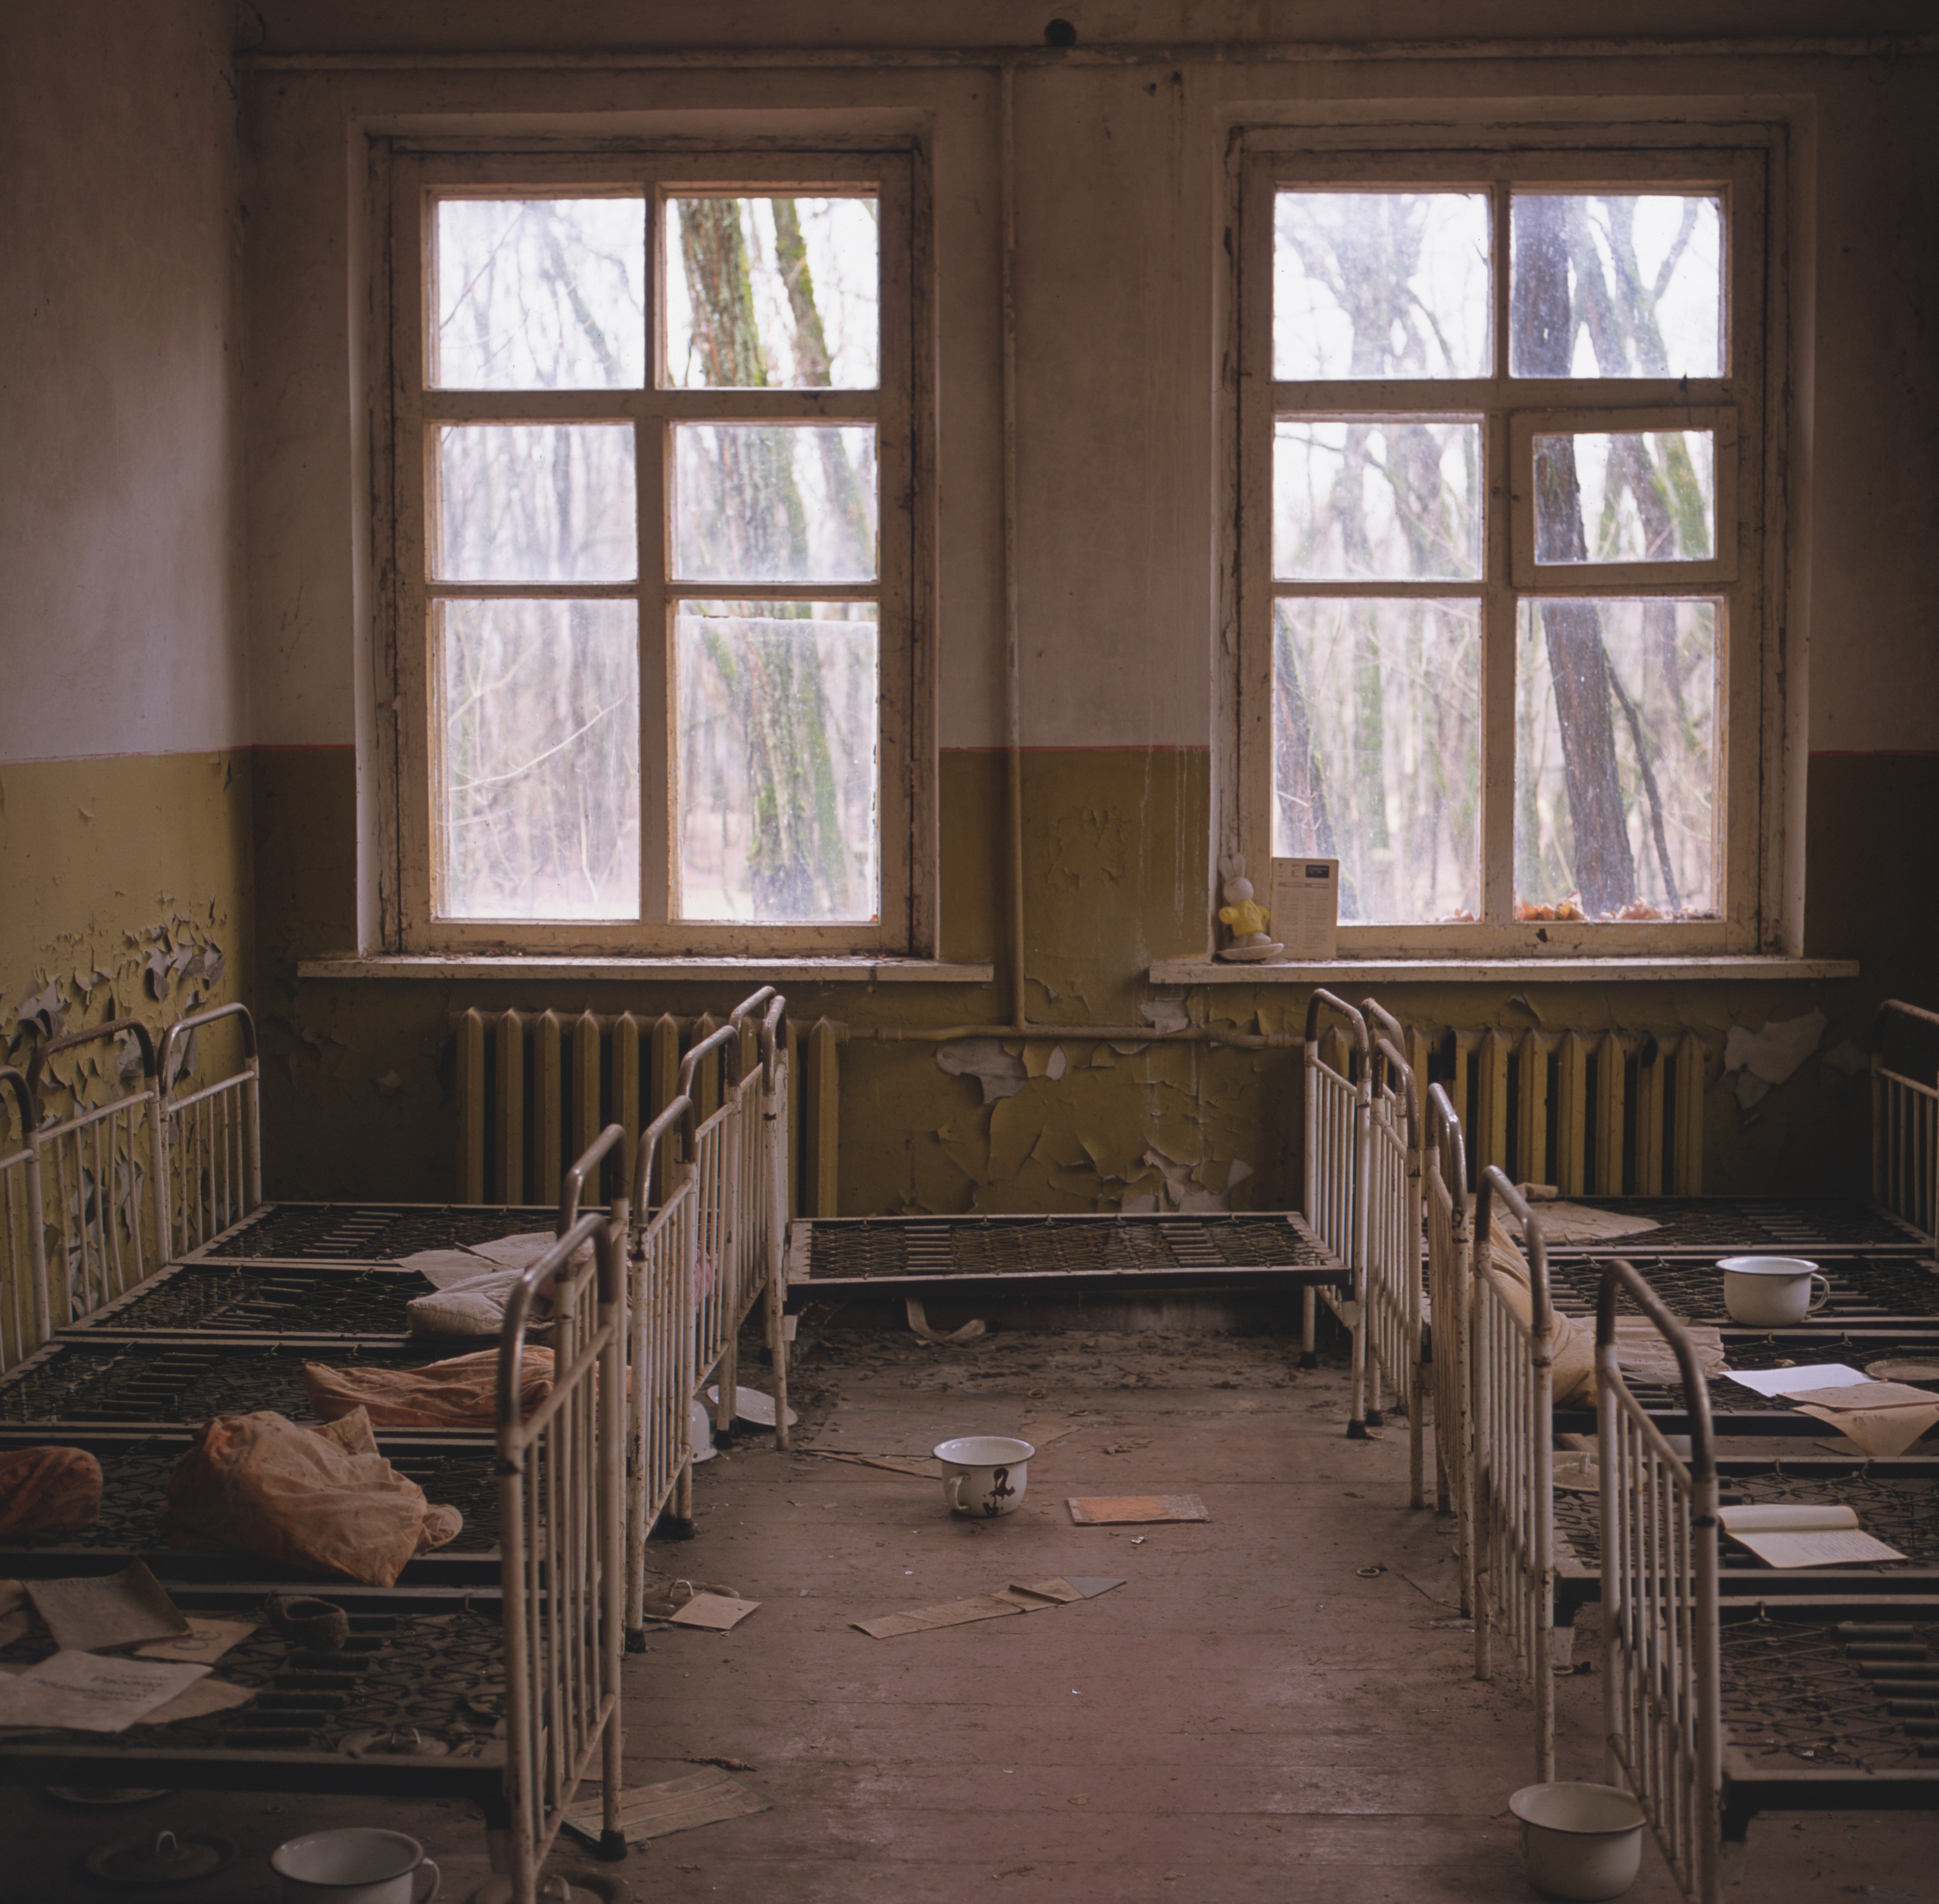 The schoolhouse beds, though the mattresses rotted away, it looked as though people had just left Gf670 + Provia 100f